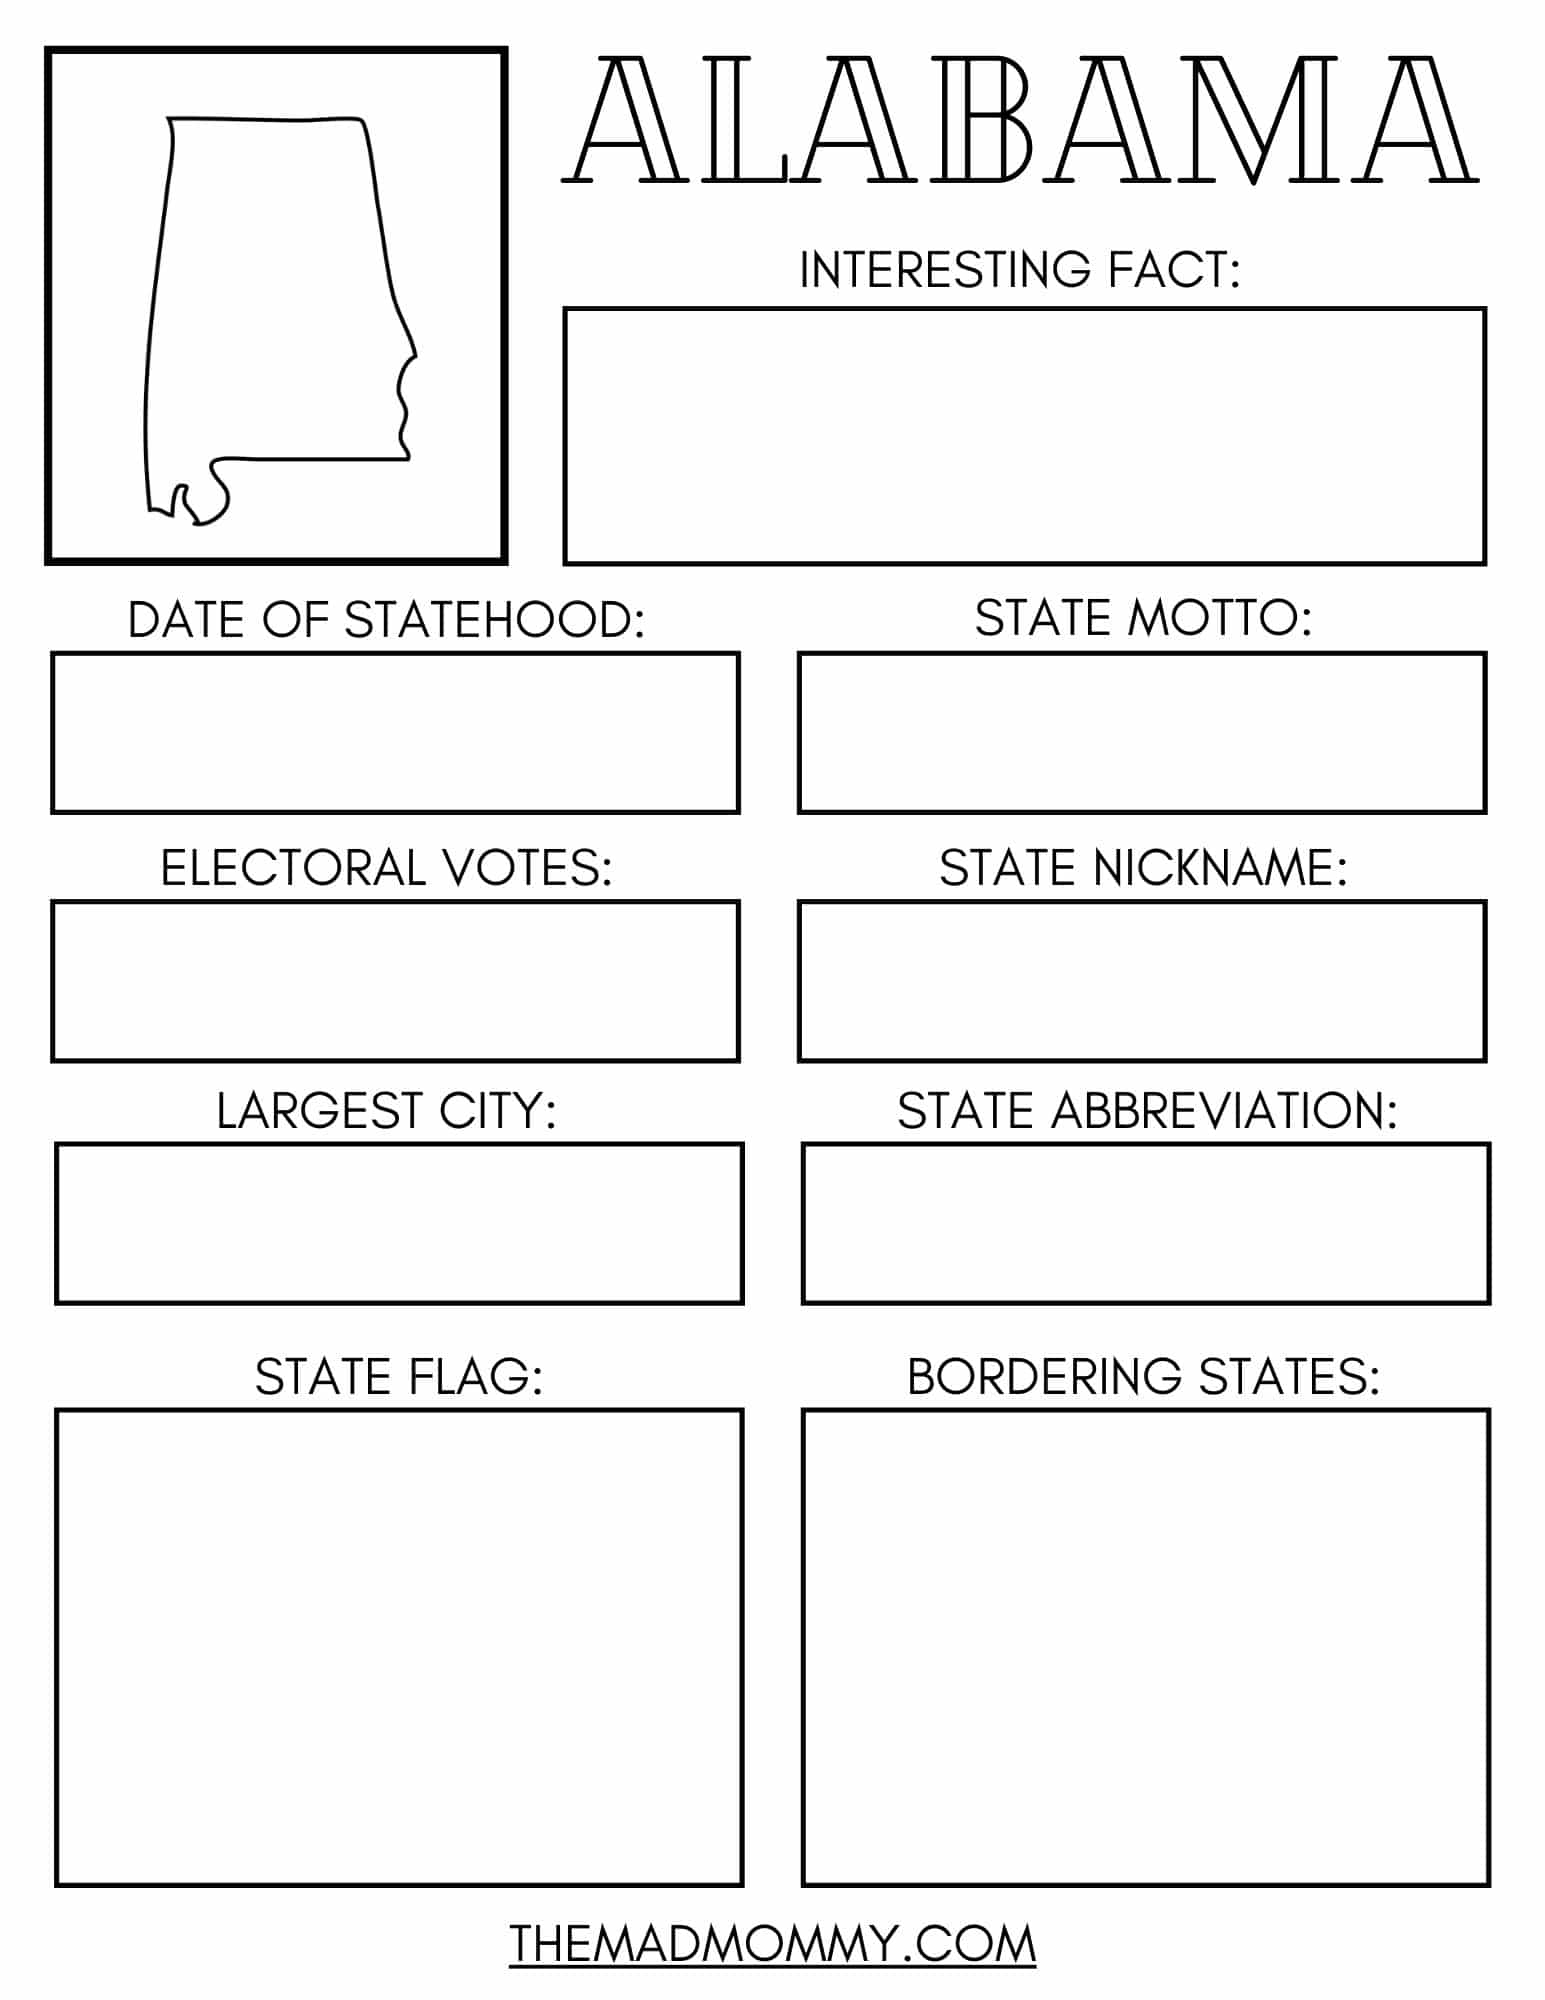 15 Facts About Alabama Free Printable State Workbook